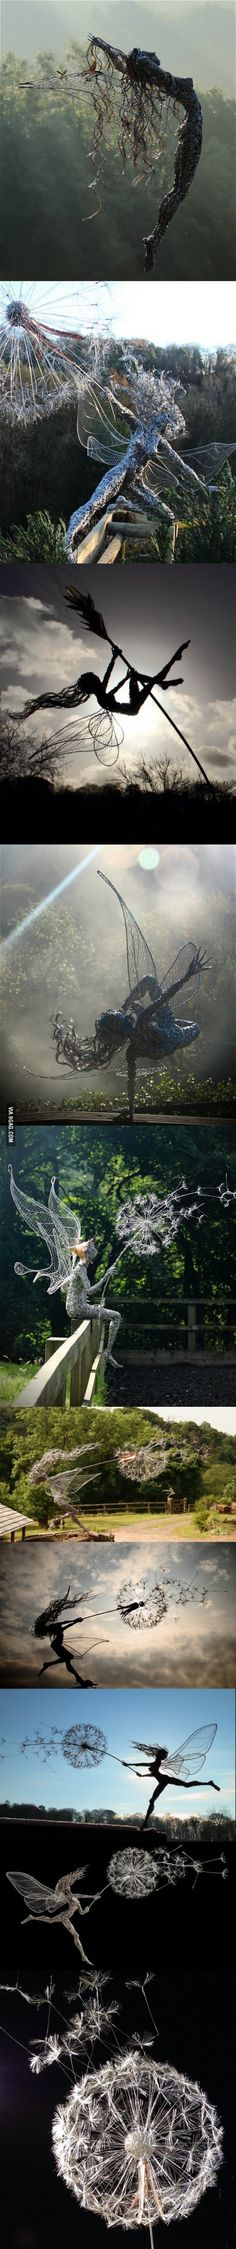 Fantasy fairies wire sculptures @australia91